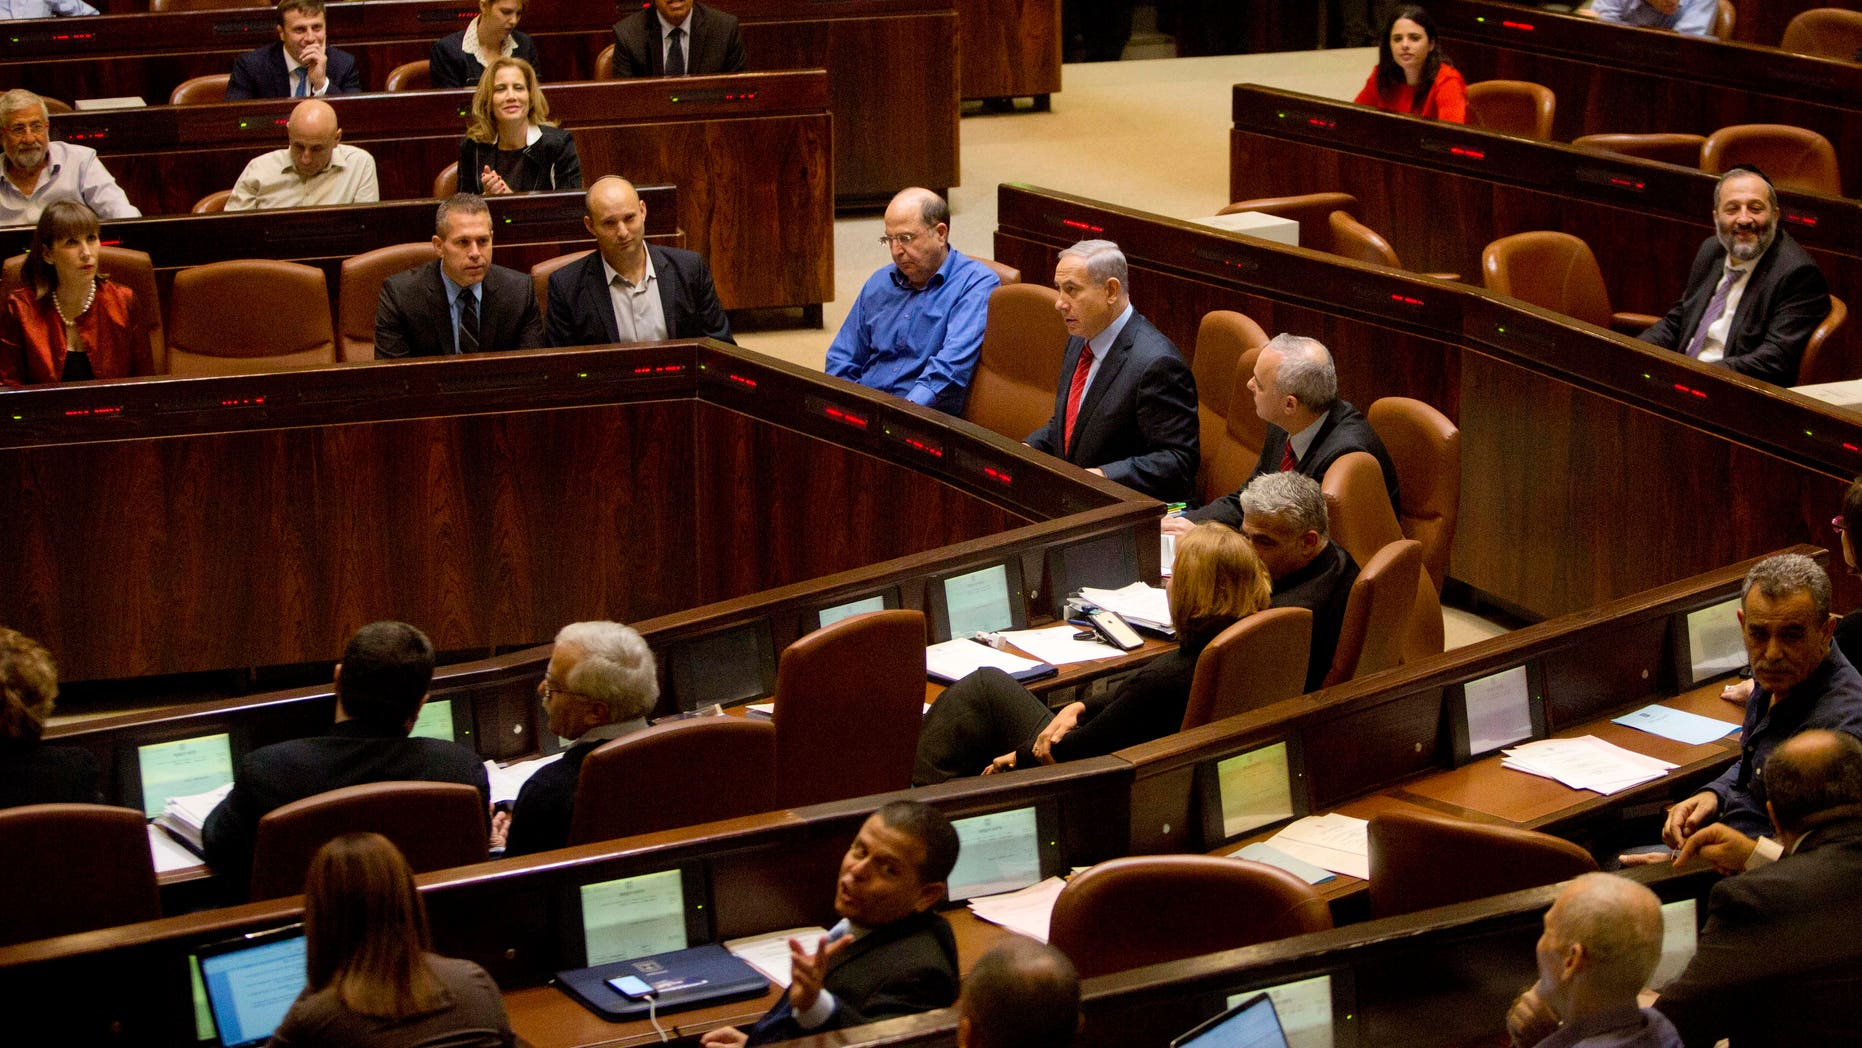 Dec. 3, 2014 - Israeli Prime Minister Benjamin Netanyahu, center, sits during a vote at the Knesset, Israel's parliament in Jerusalem. Israeli lawmakers overwhelmingly voted to dissolve parliament Monday, officially kicking off the country's election campaign.